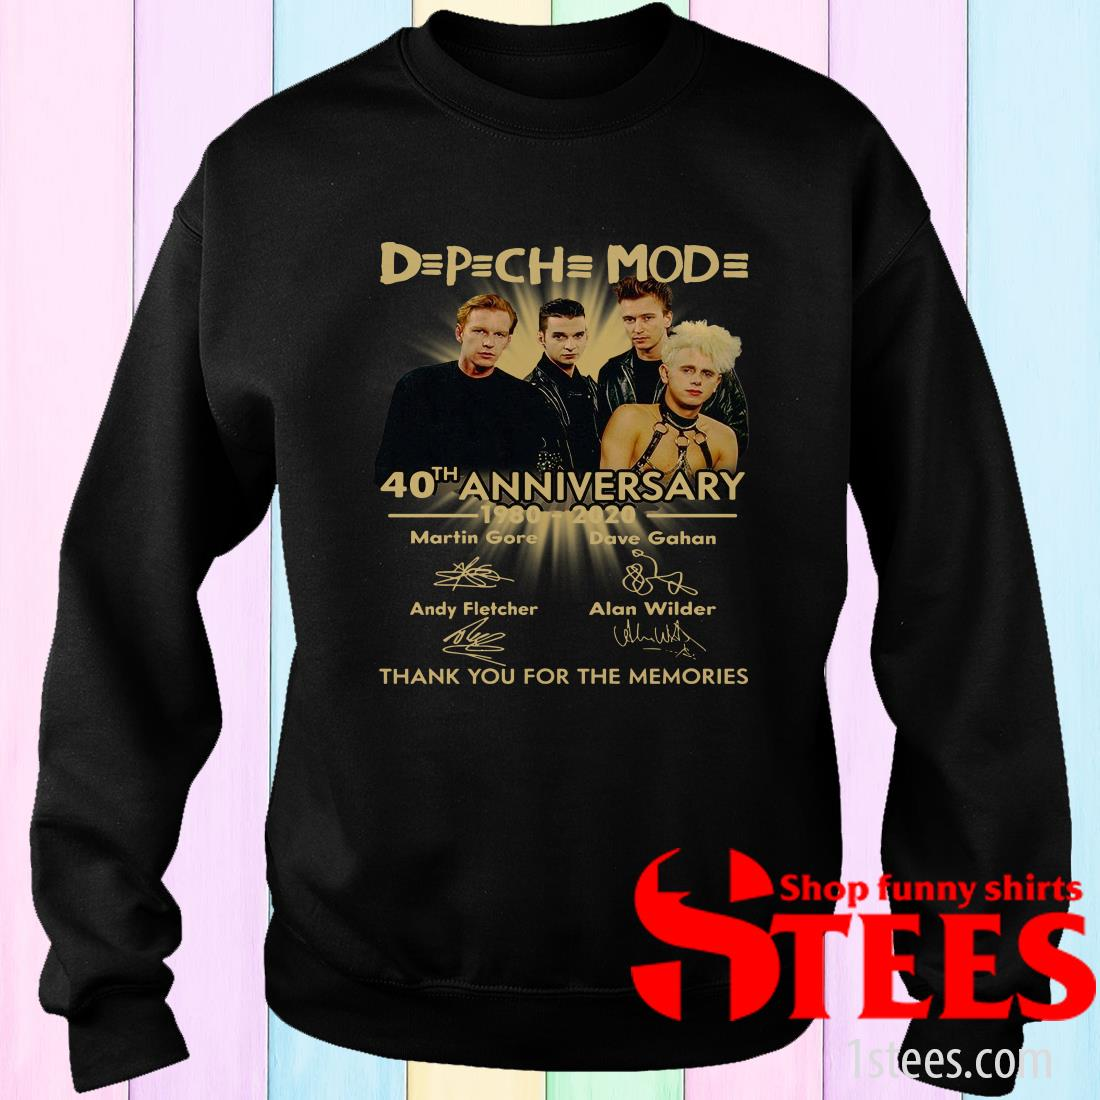 Depeche Mode 40th Anniversary 1980-2020 Signatures Sweatshirt